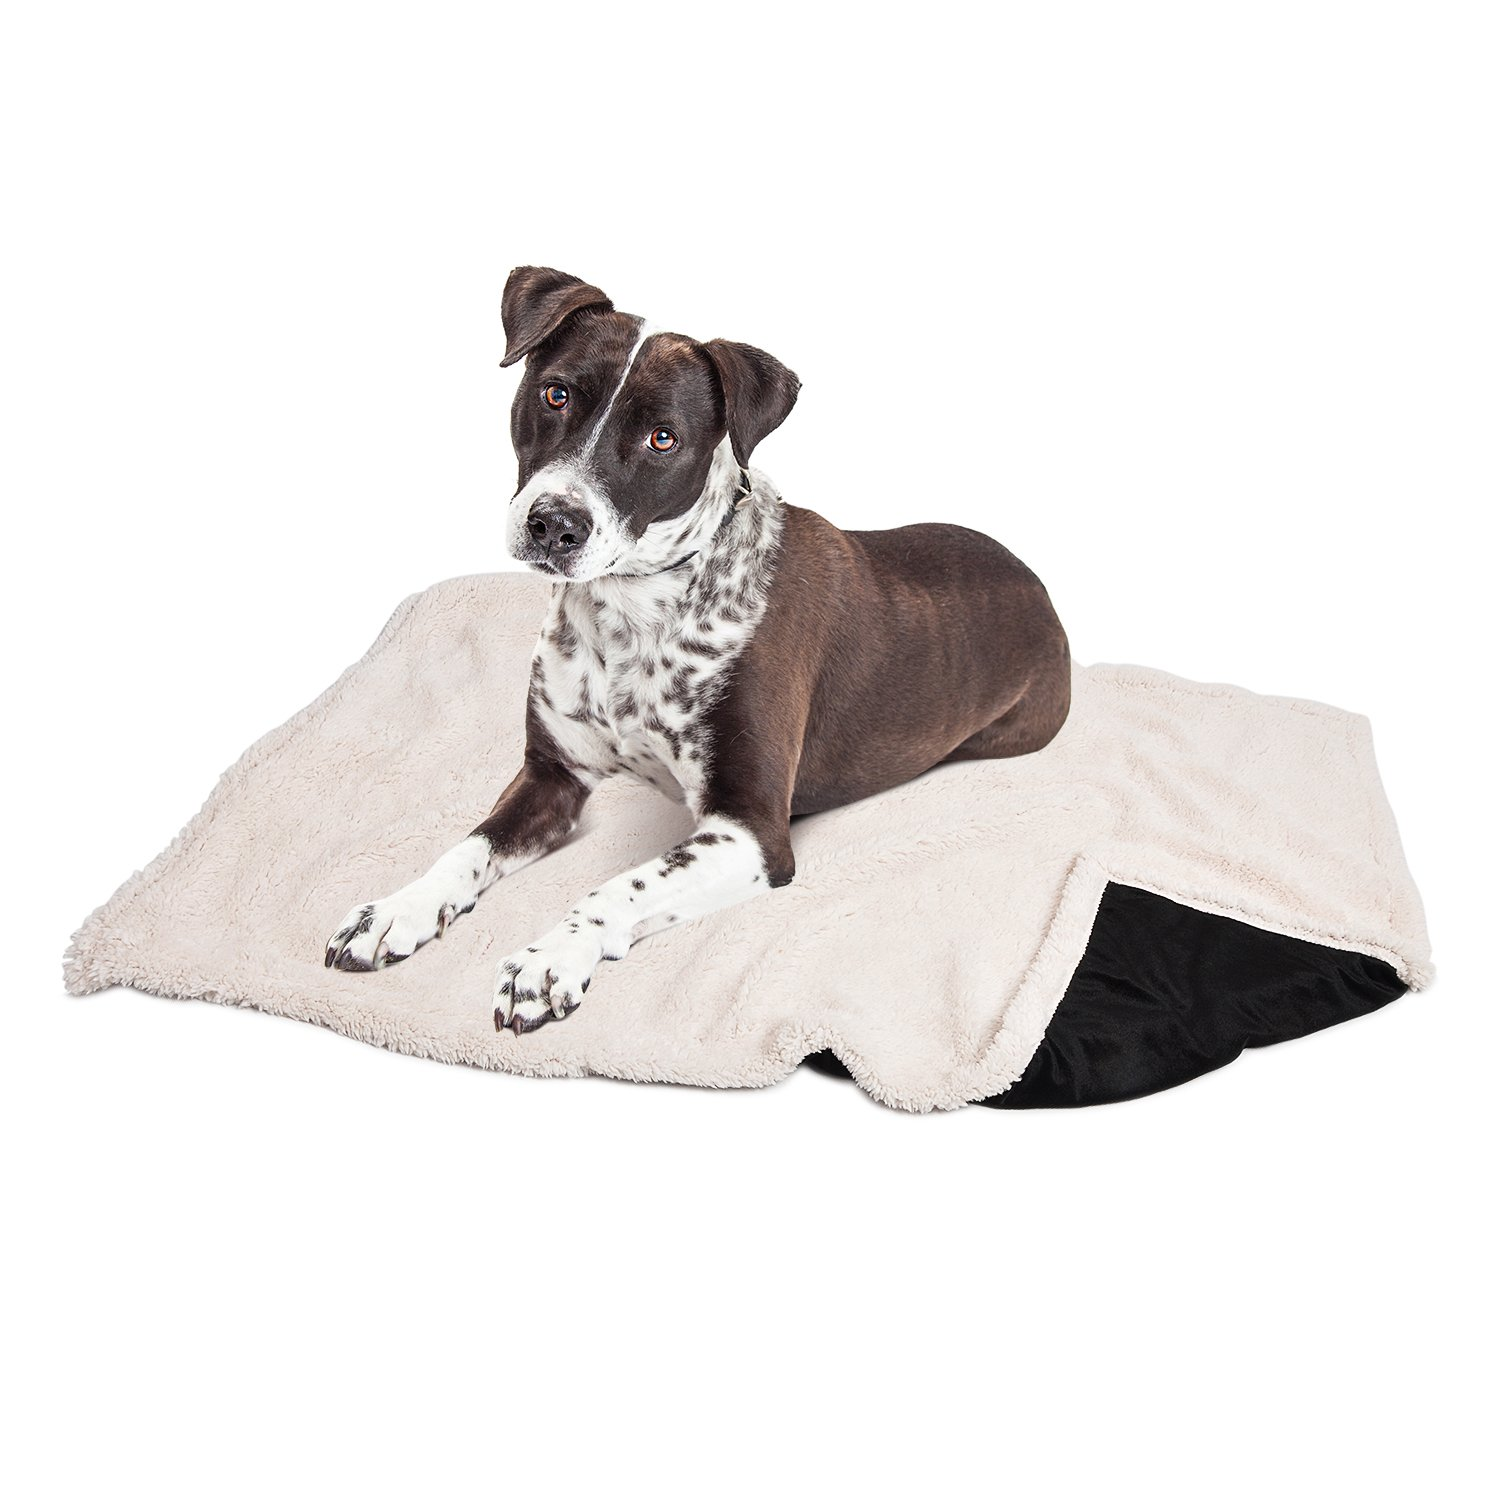 Puppy Blanket,Super Soft Sherpa Dog Blankets and Throws Cat Fleece Sleeping Mat for Pet Small Animals 45x30 Black by Pawsse (Image #4)